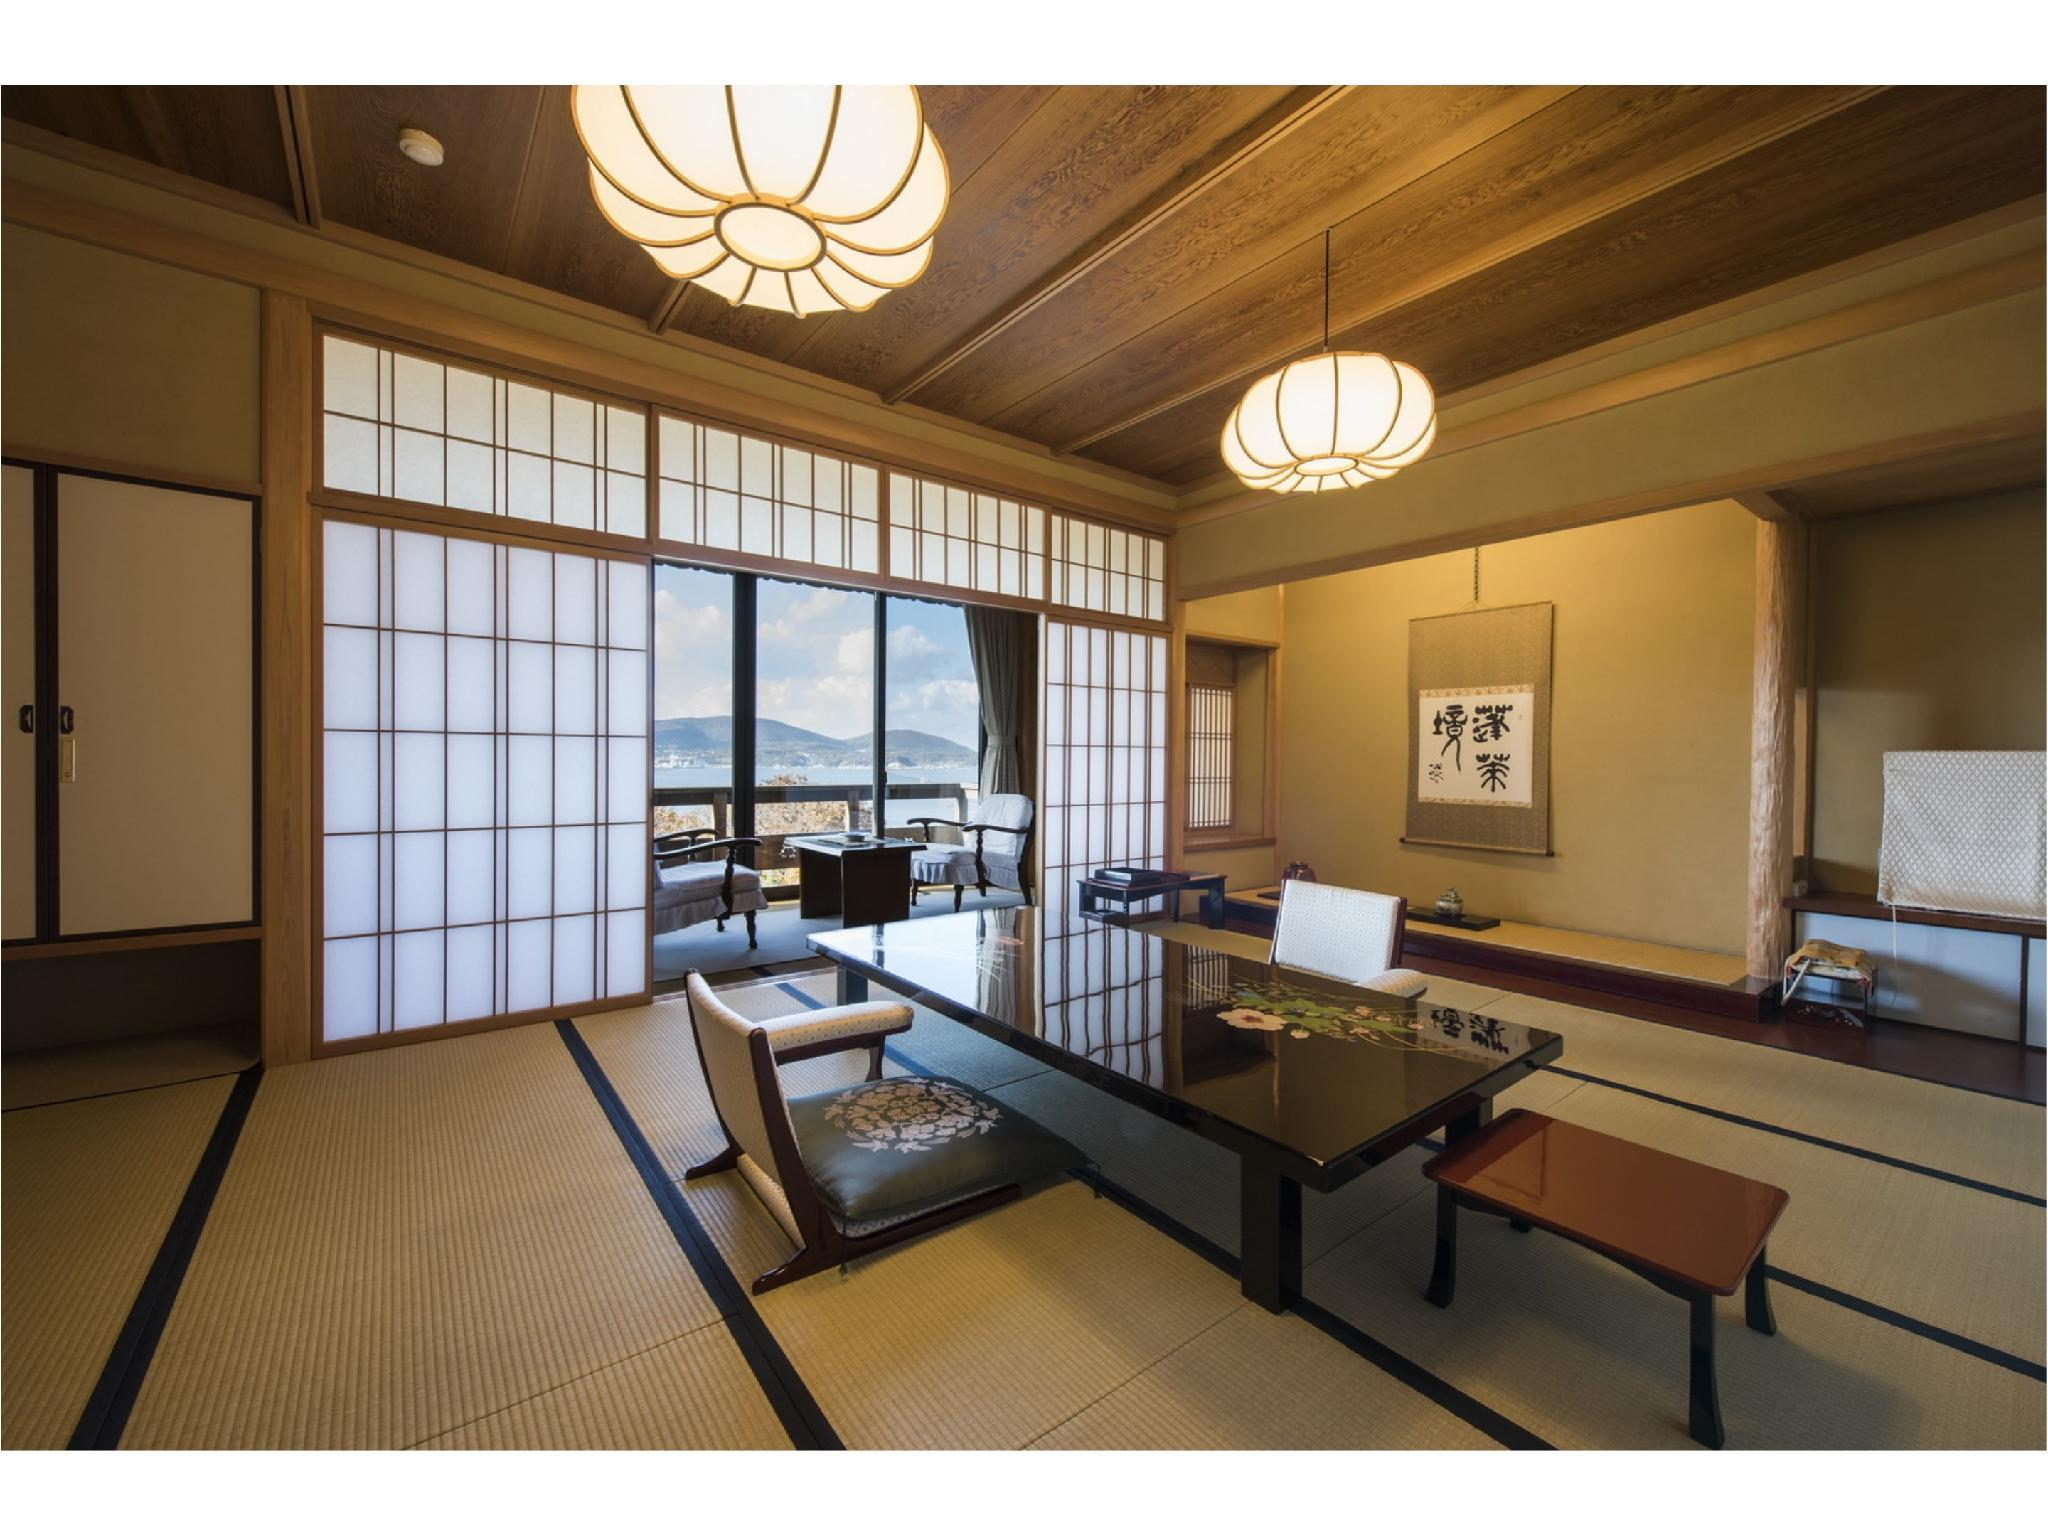 本馆 和式房※无浴室有厕所 (Japanese-style Room (Main Building) *Has toilet, no bath in room)